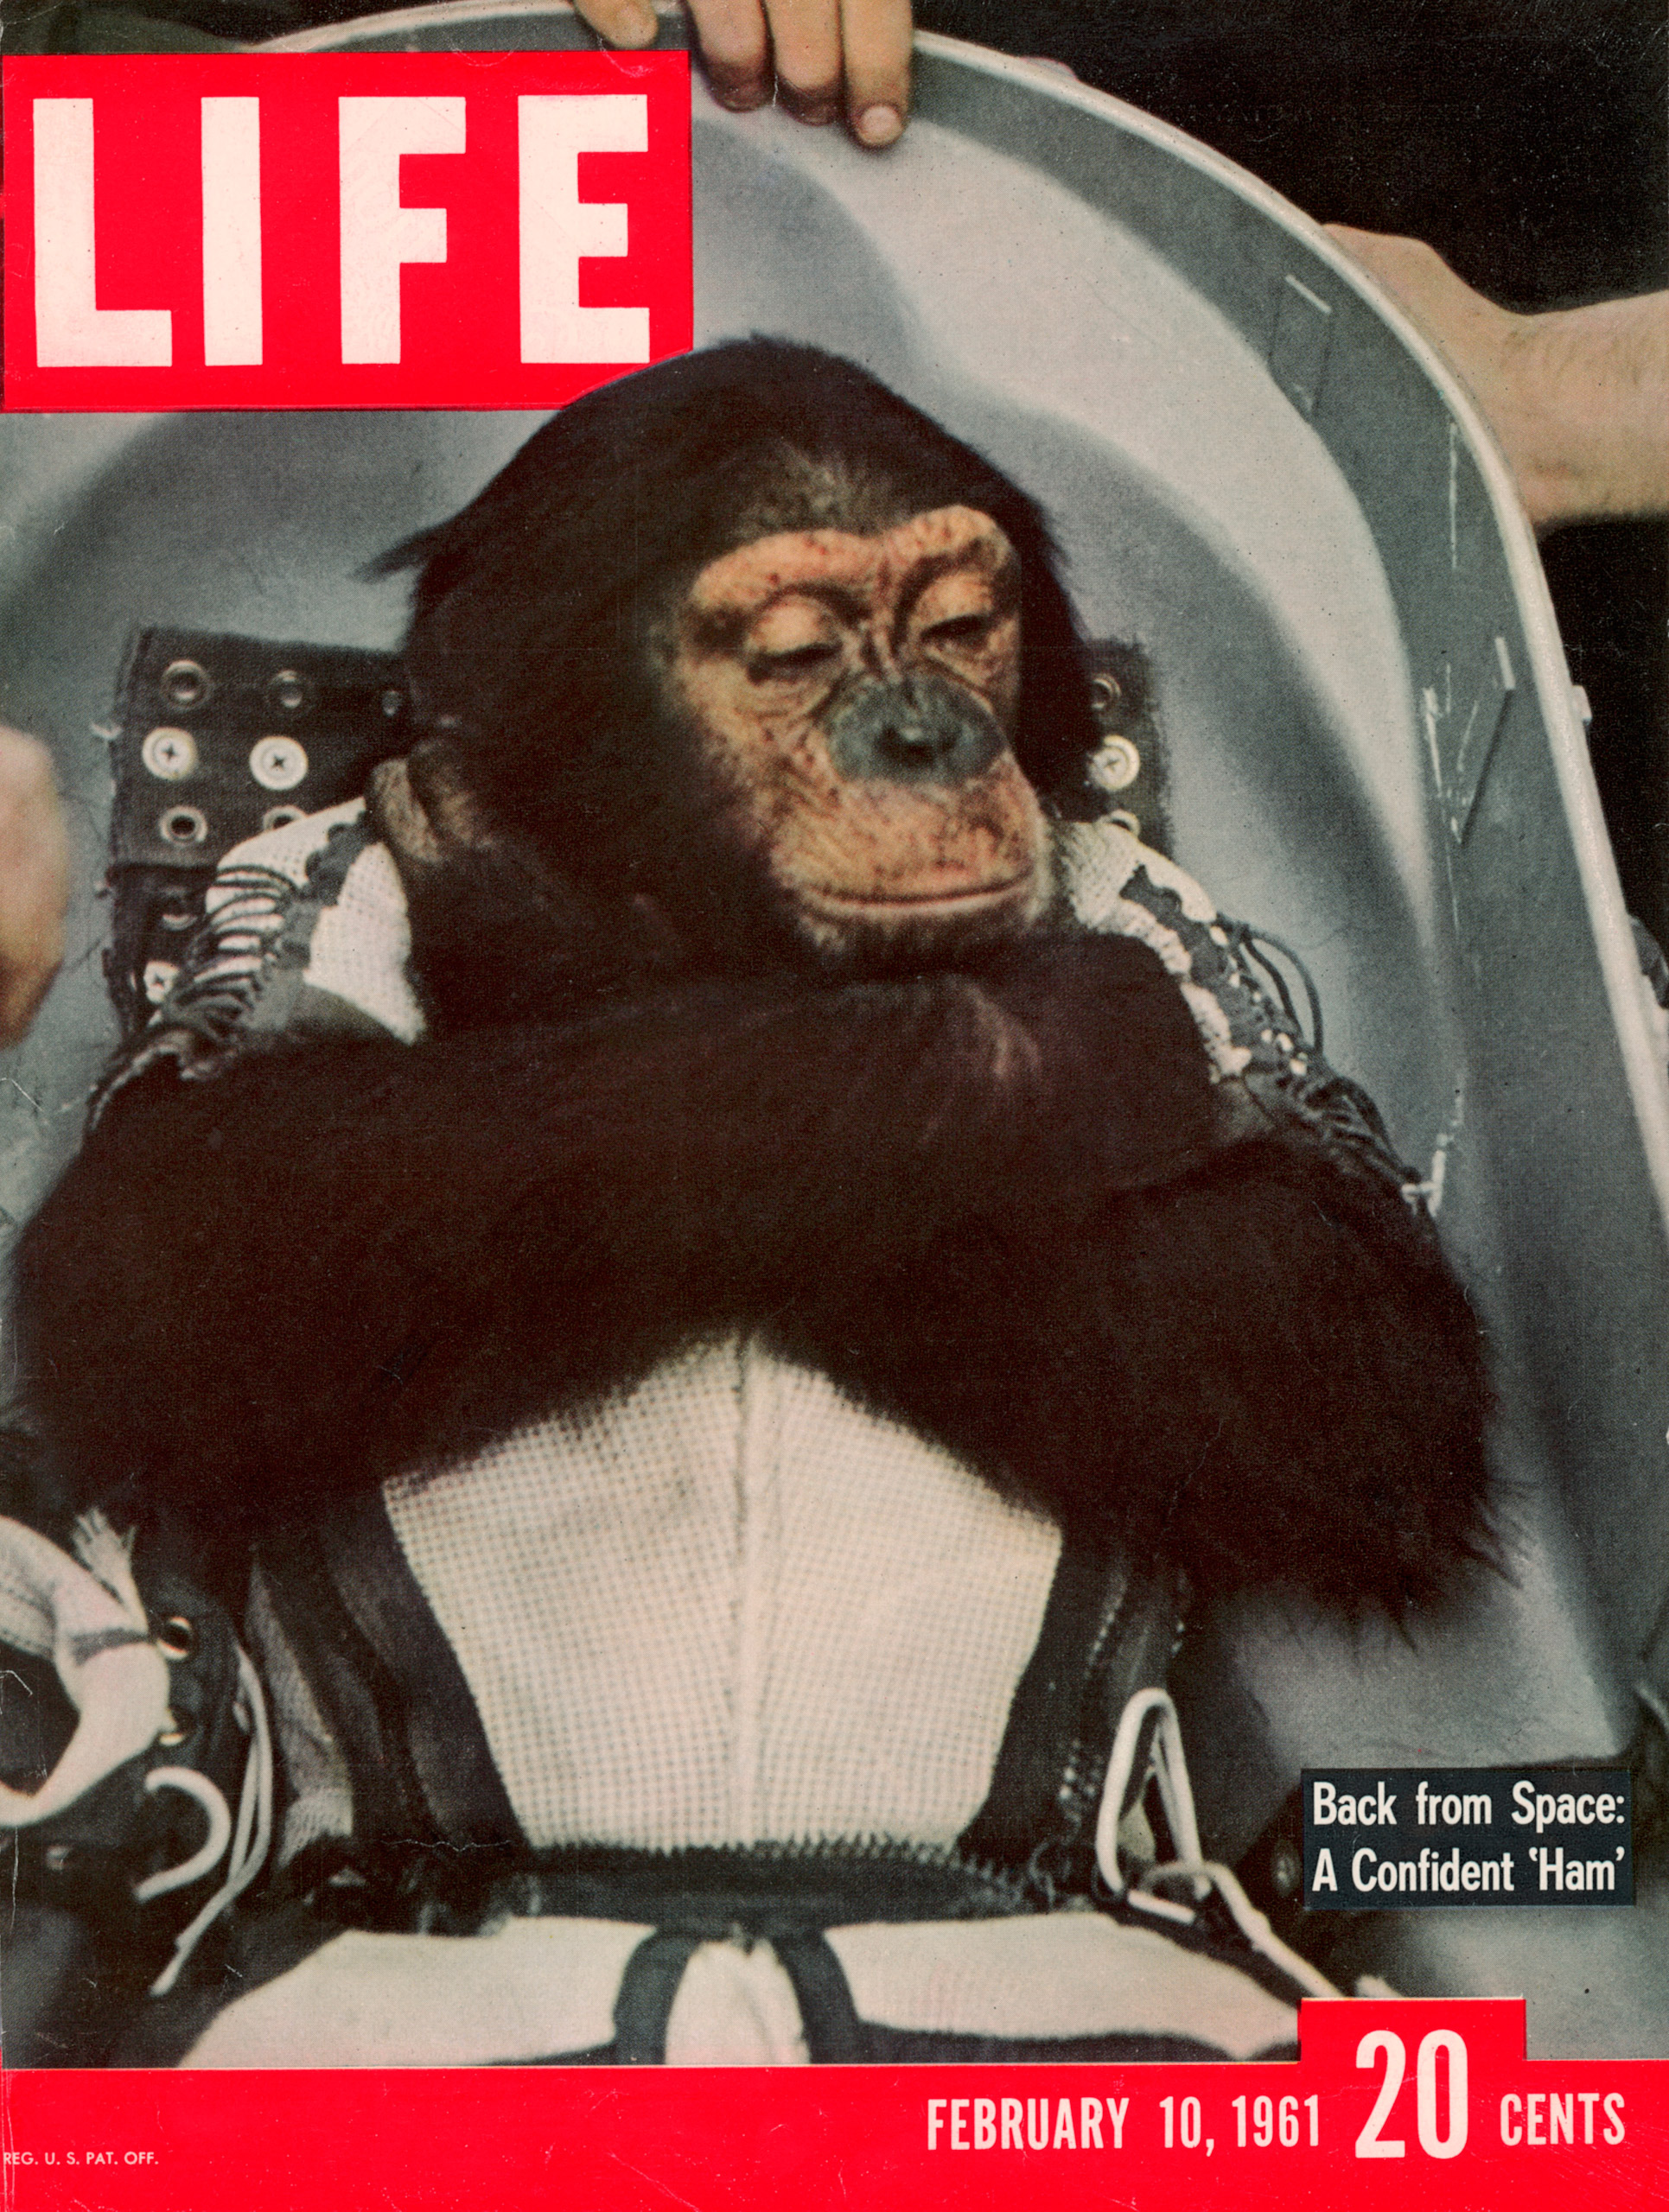 February 10, 1961 LIFE Magazine cover (photo by Henry Burroughs).